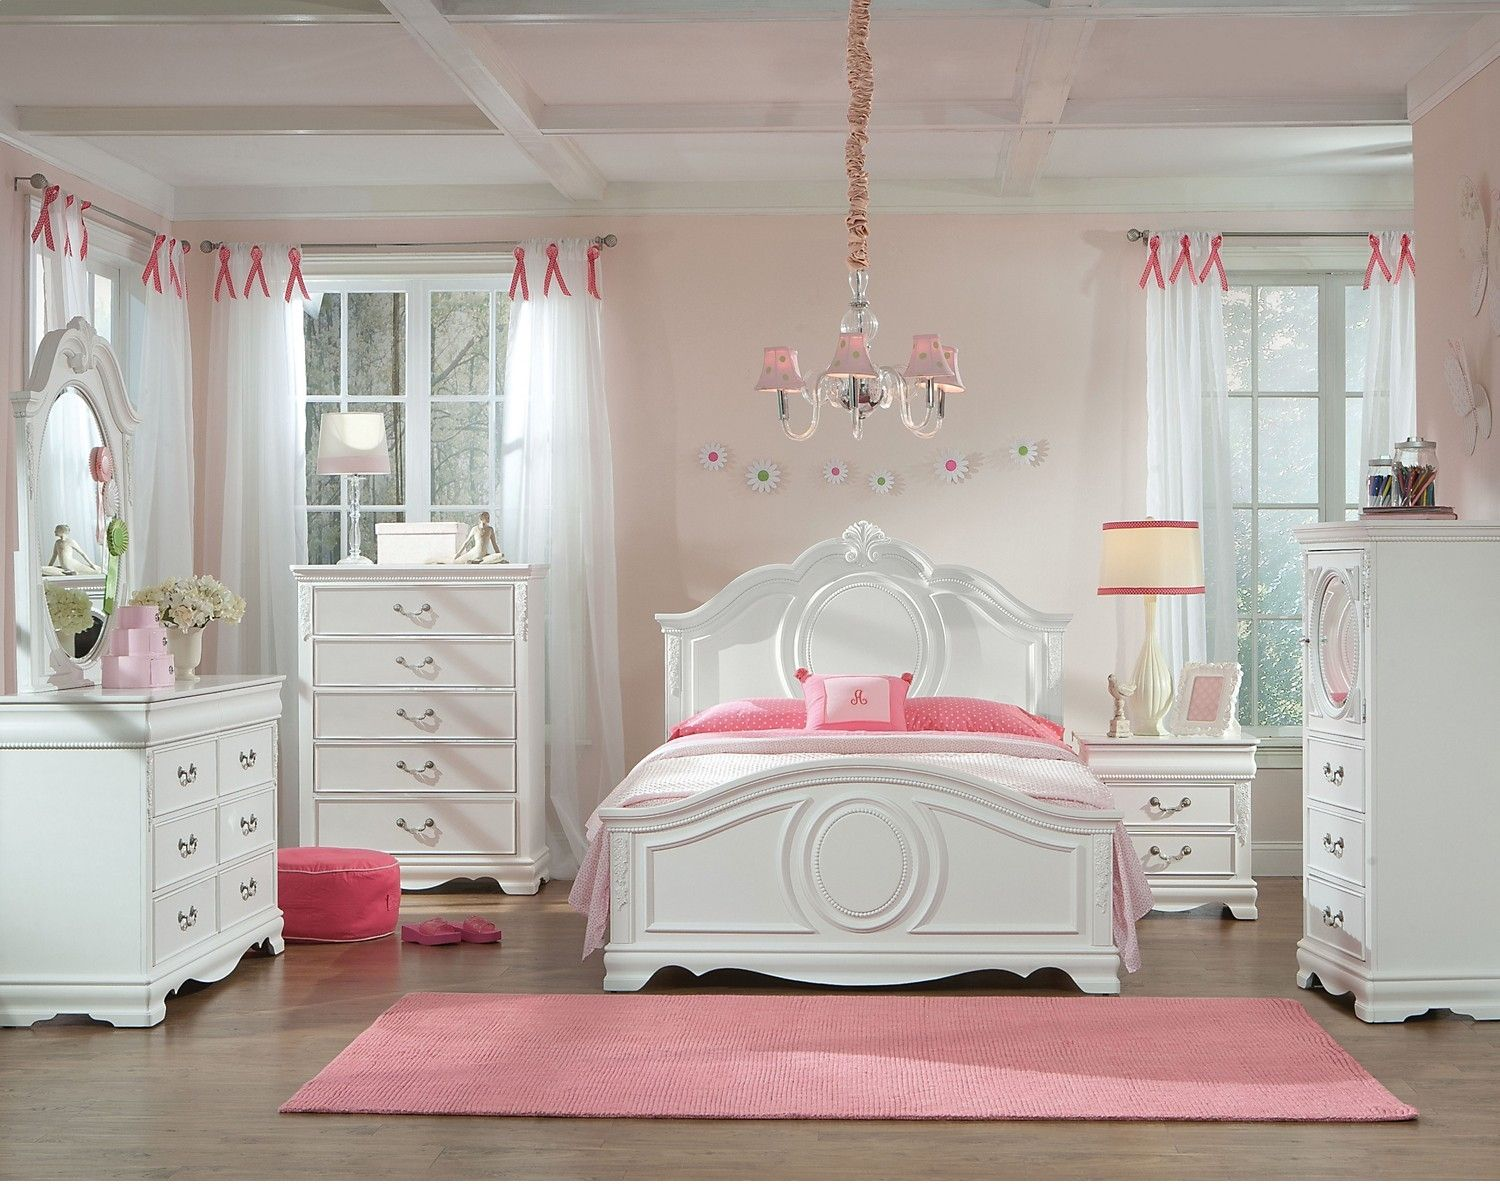 Alex daisy online kids furniture store in bangalore that provides some kids furniture like drawer chests beds bed side tables wardrobes study tables